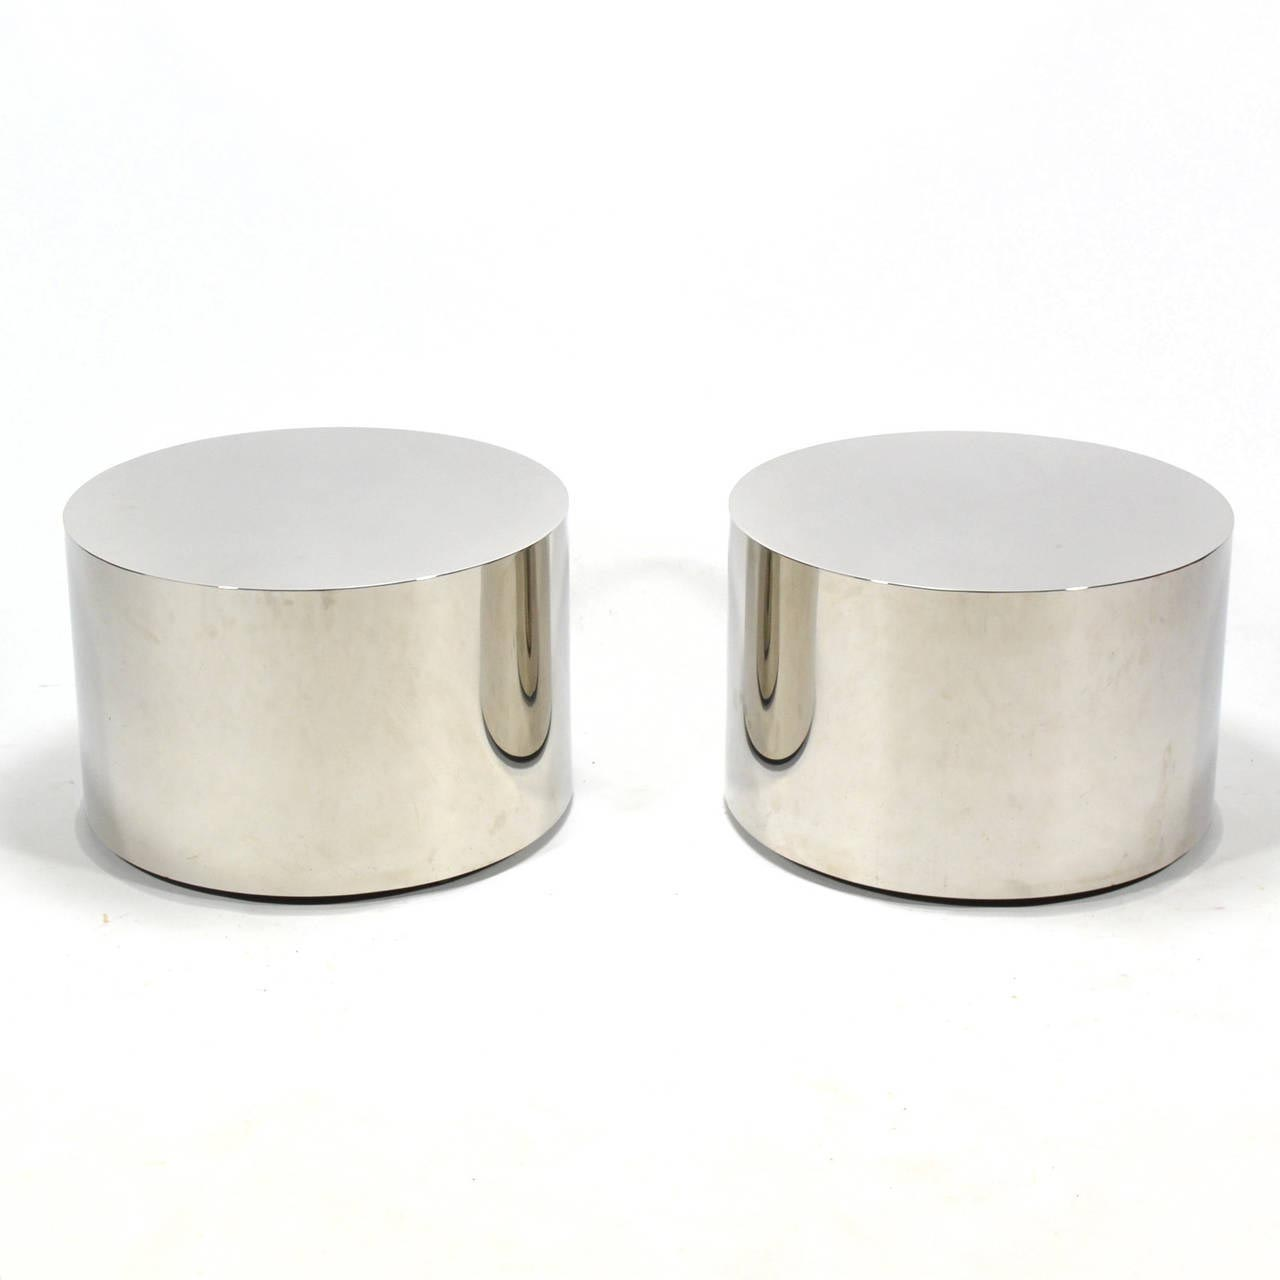 Stainless Steel Drum Coffee Table